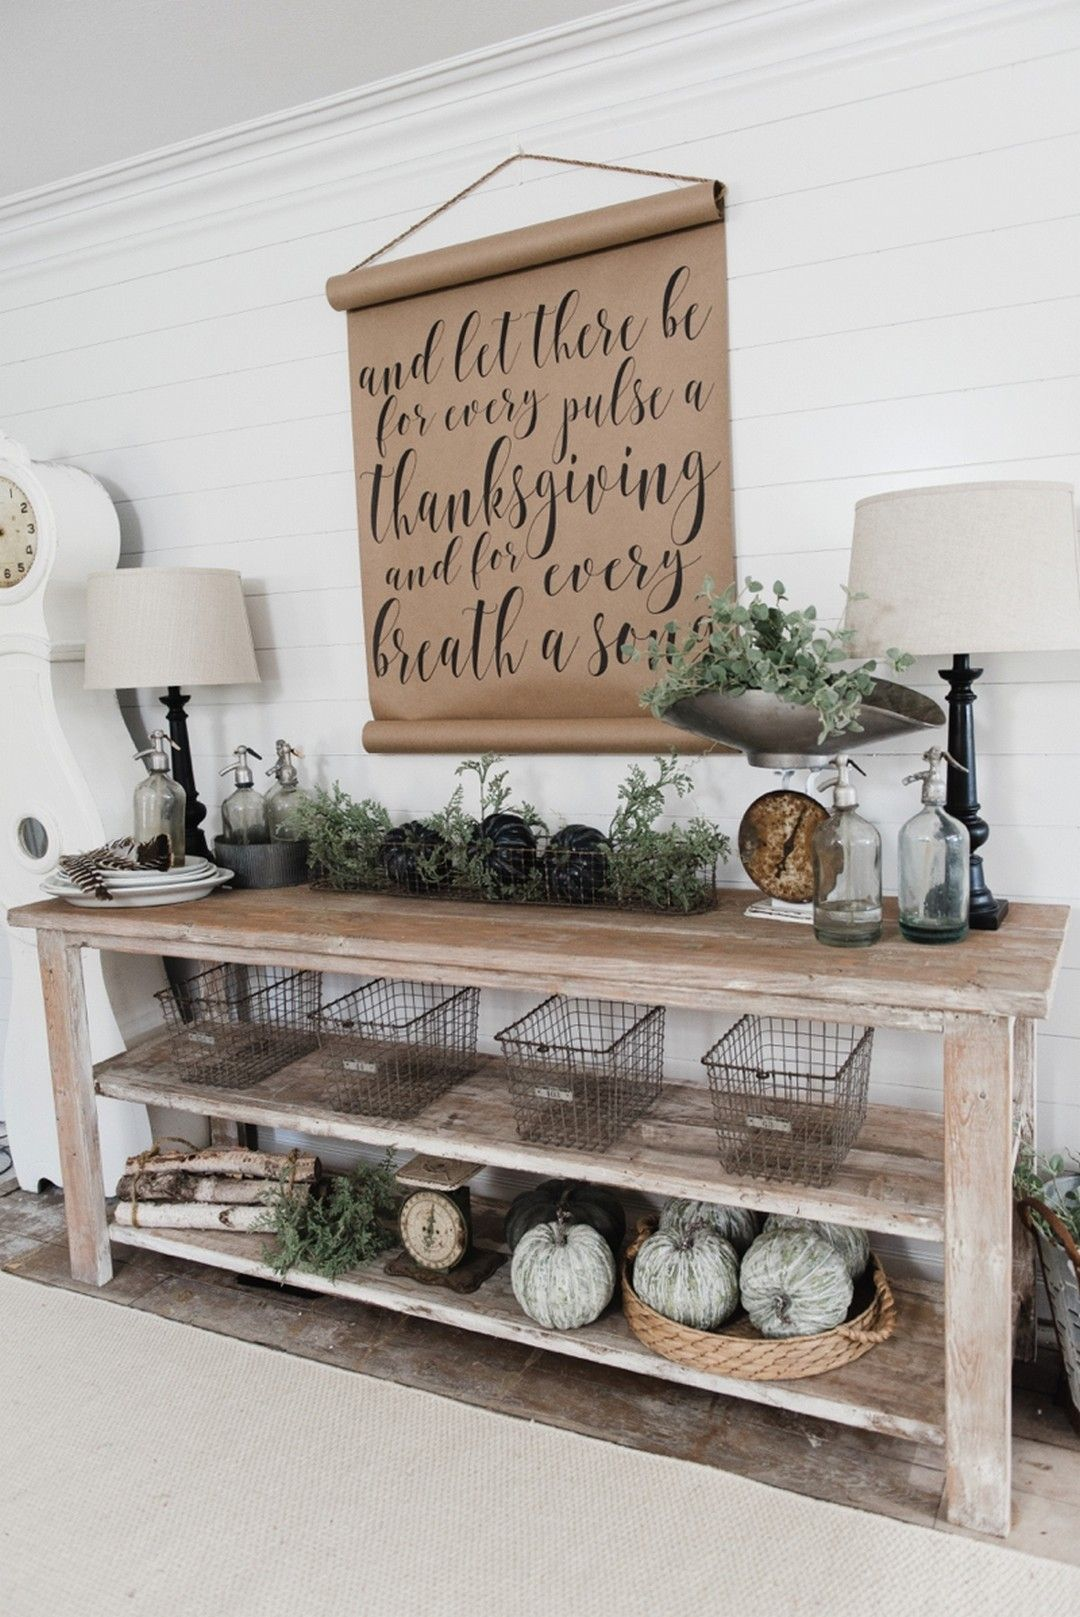 52 rustic farmhouse bohemian decorating ideas https www onechitecture com